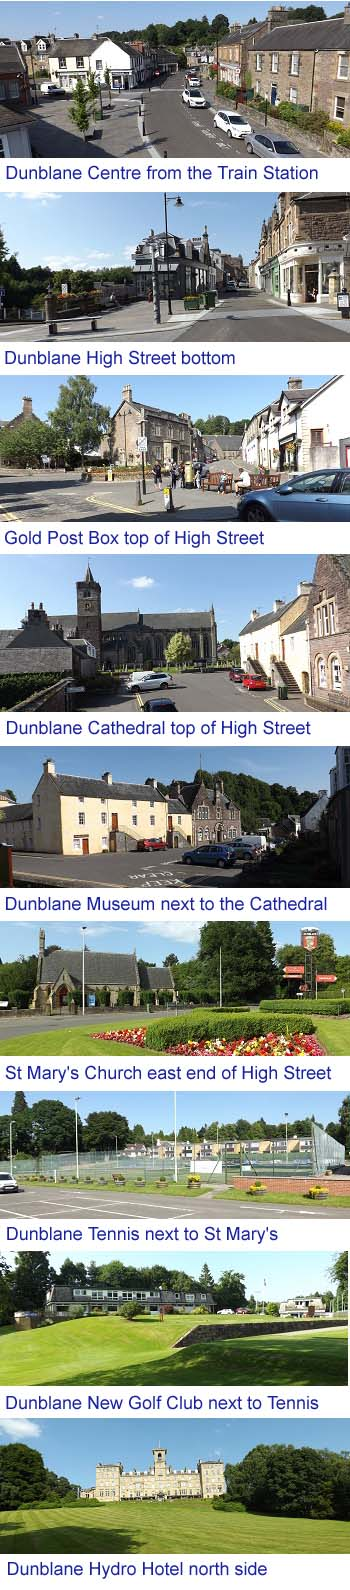 Dunblane Photos